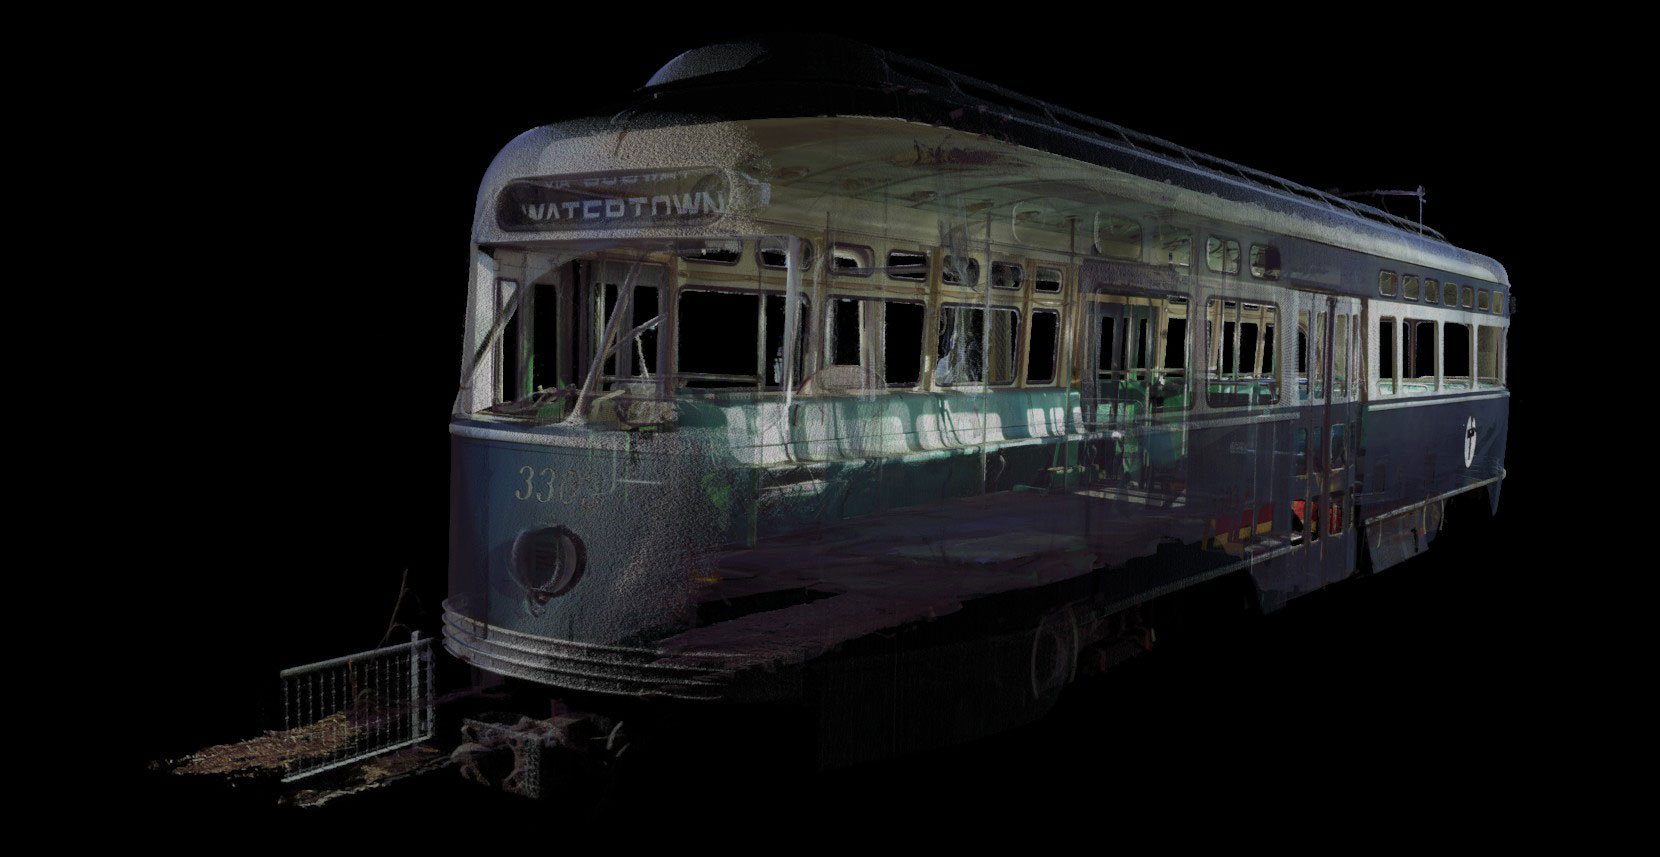 myndworkshop-3D-laser-scanning-point-cloud-red-hook-brooklyn-new-york-city-trolley-8.jpg